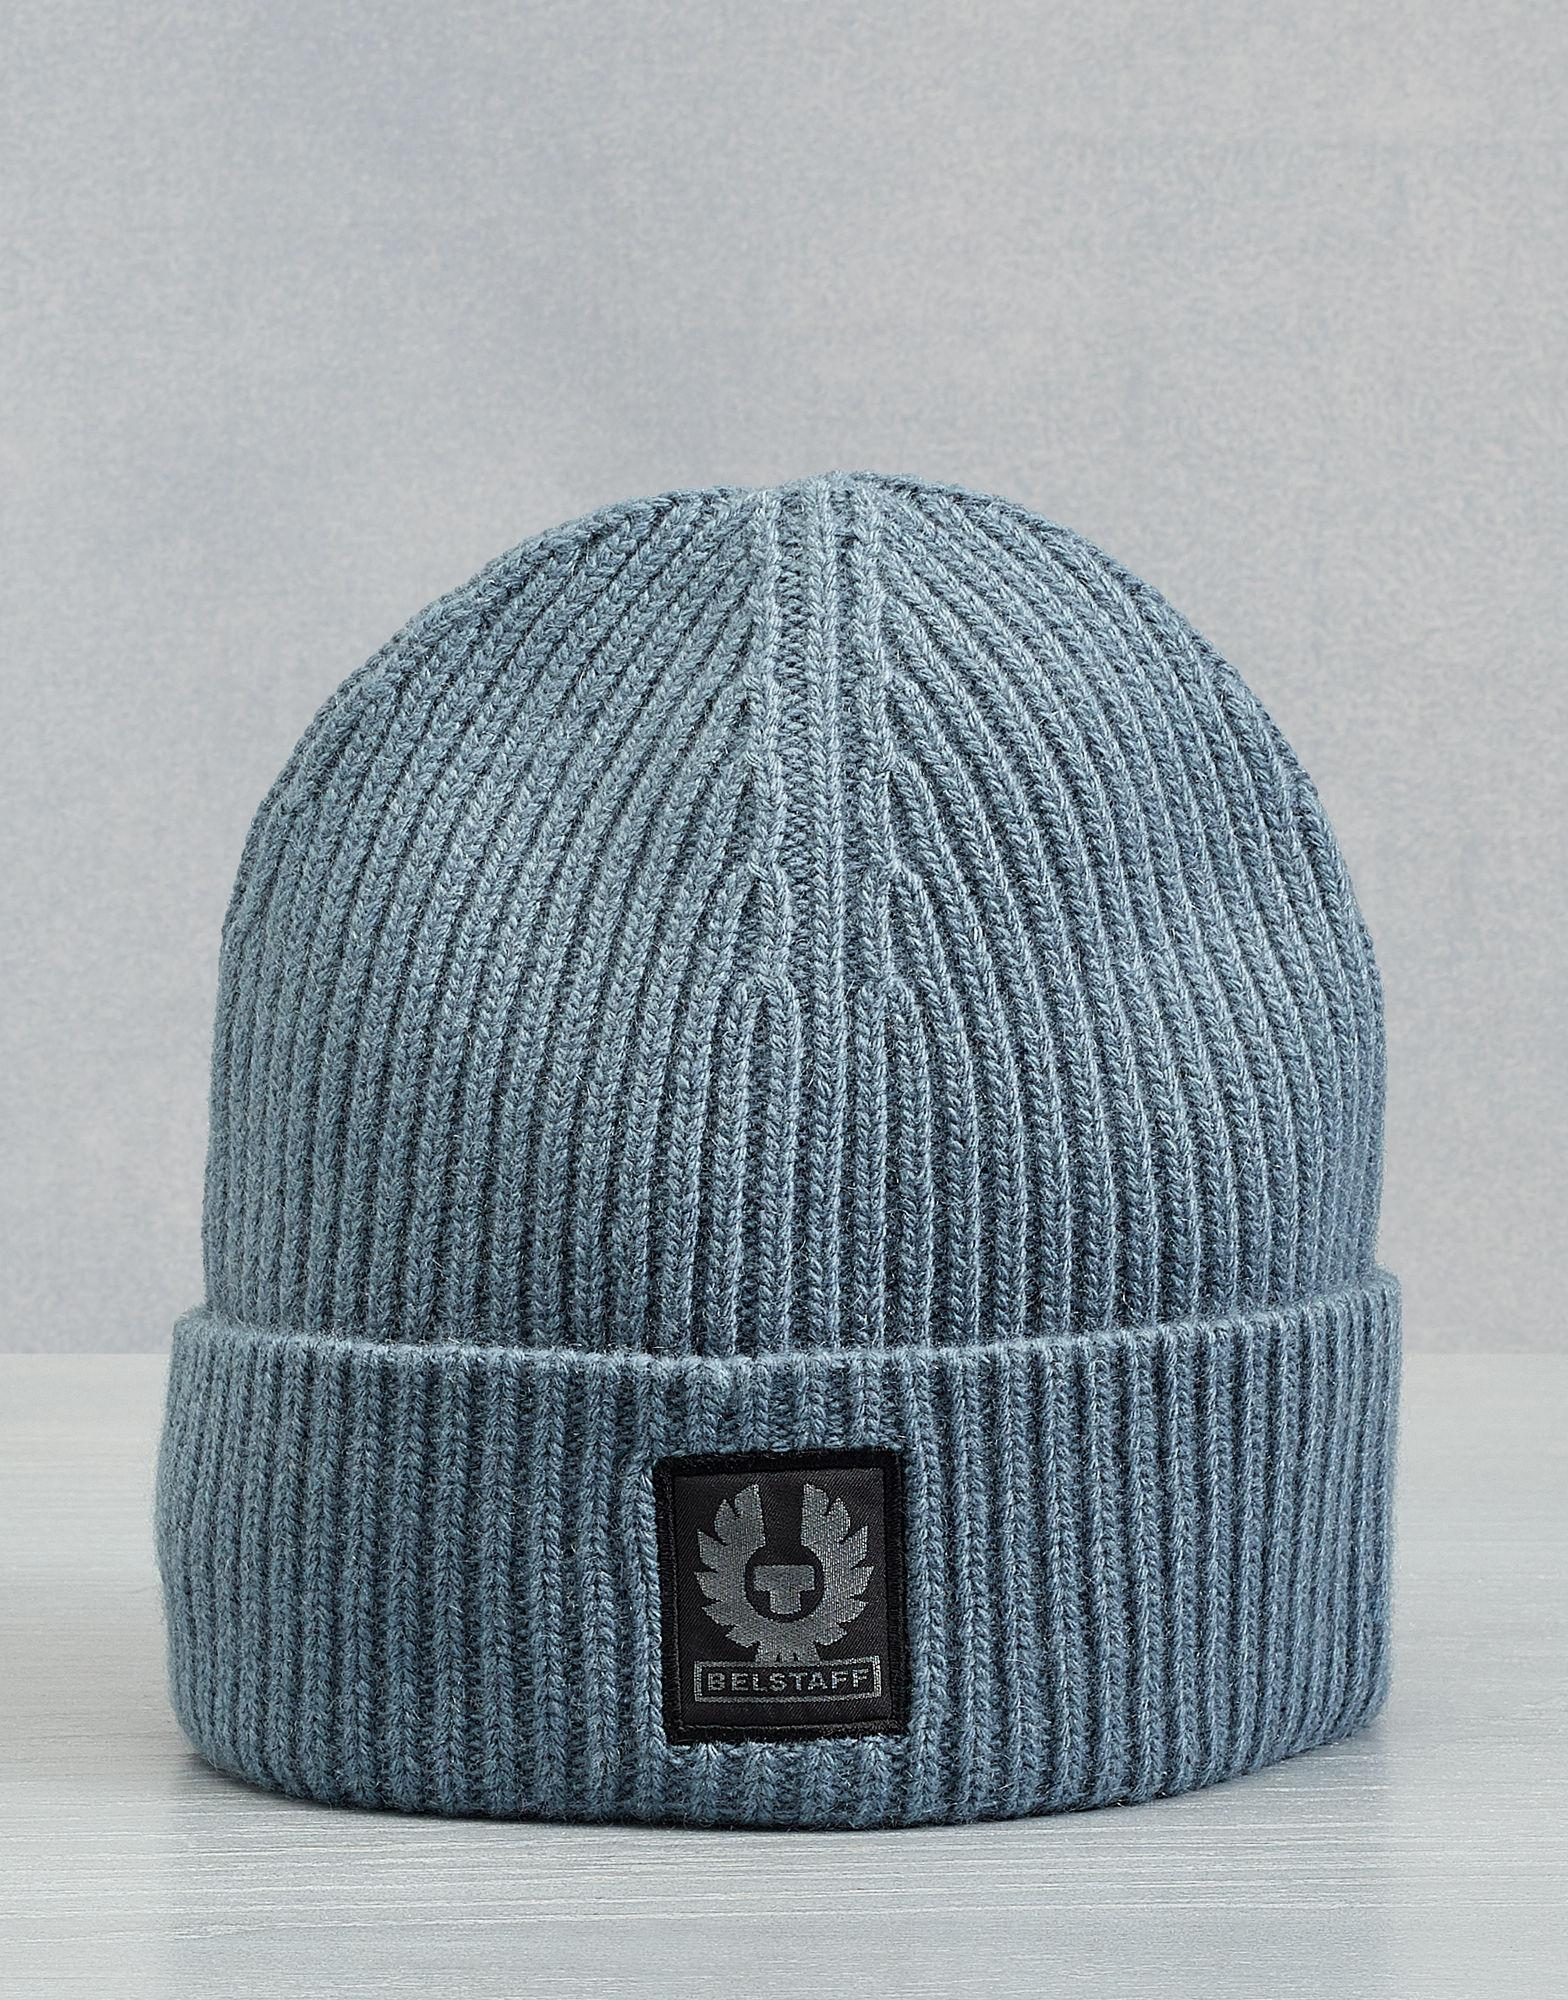 1b63f43c0b3a1 Belstaff Seabrook Knitted Hat in Blue for Men - Lyst